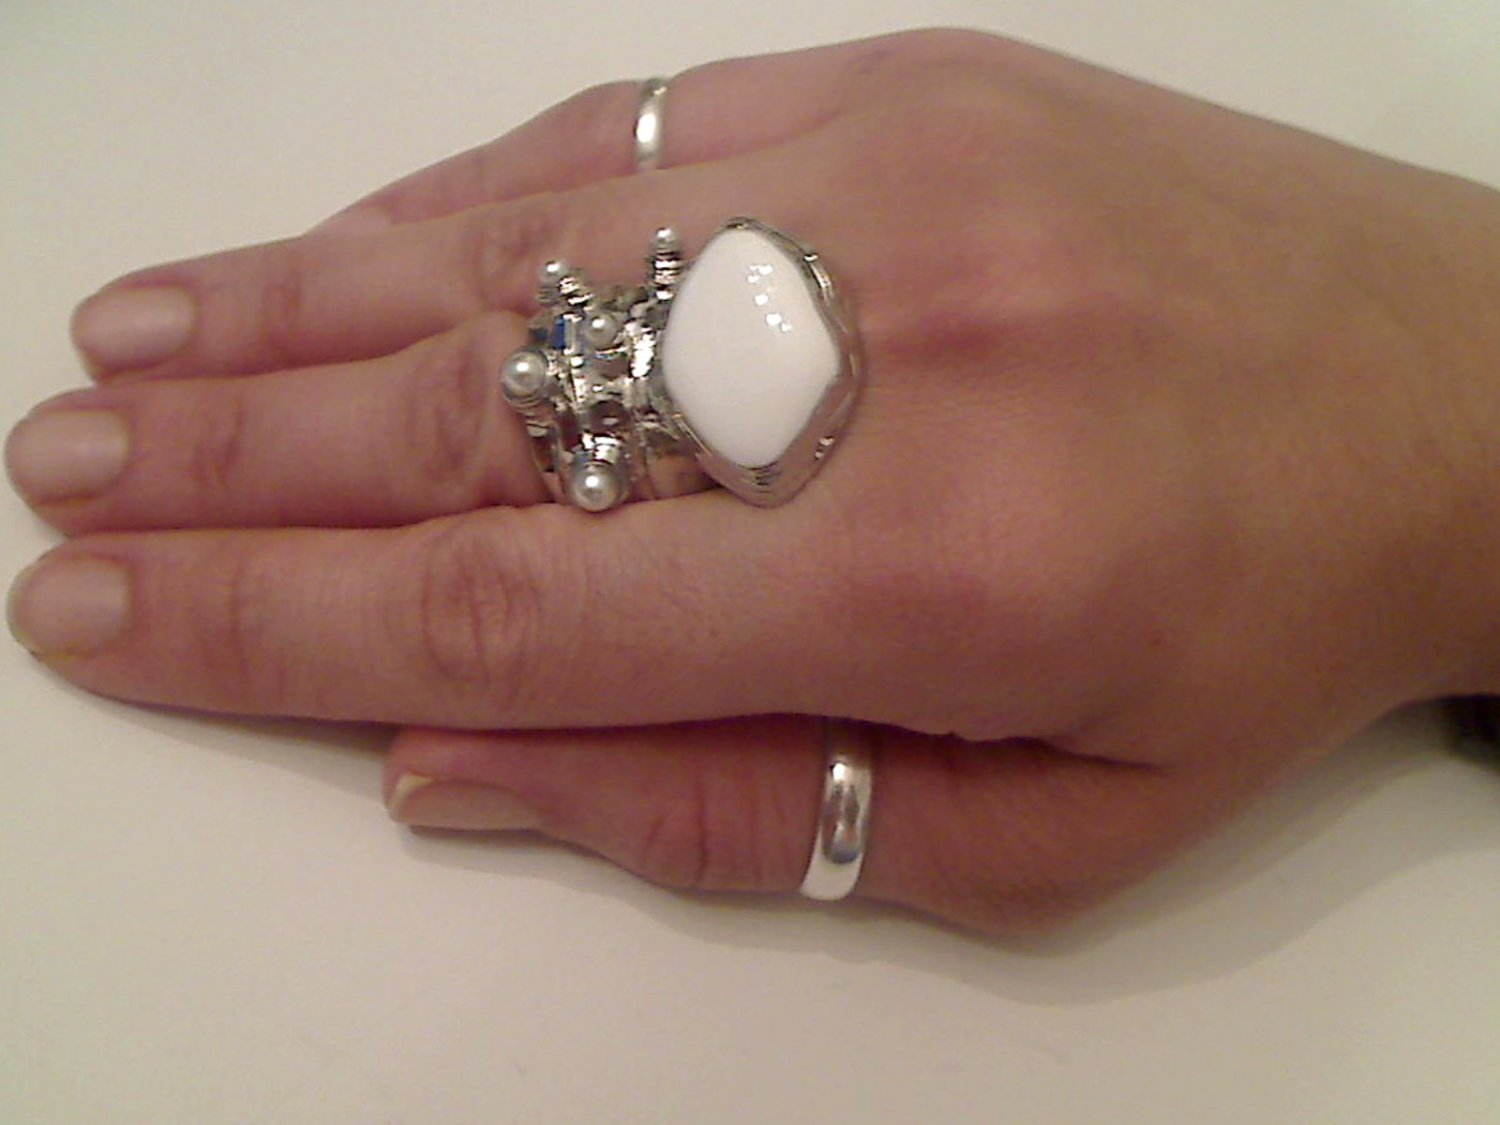 WHITE ARTY CHUNKY SPIKEY MOON KNUCKLE RING IN SILVER SIZES 7*8*9*10